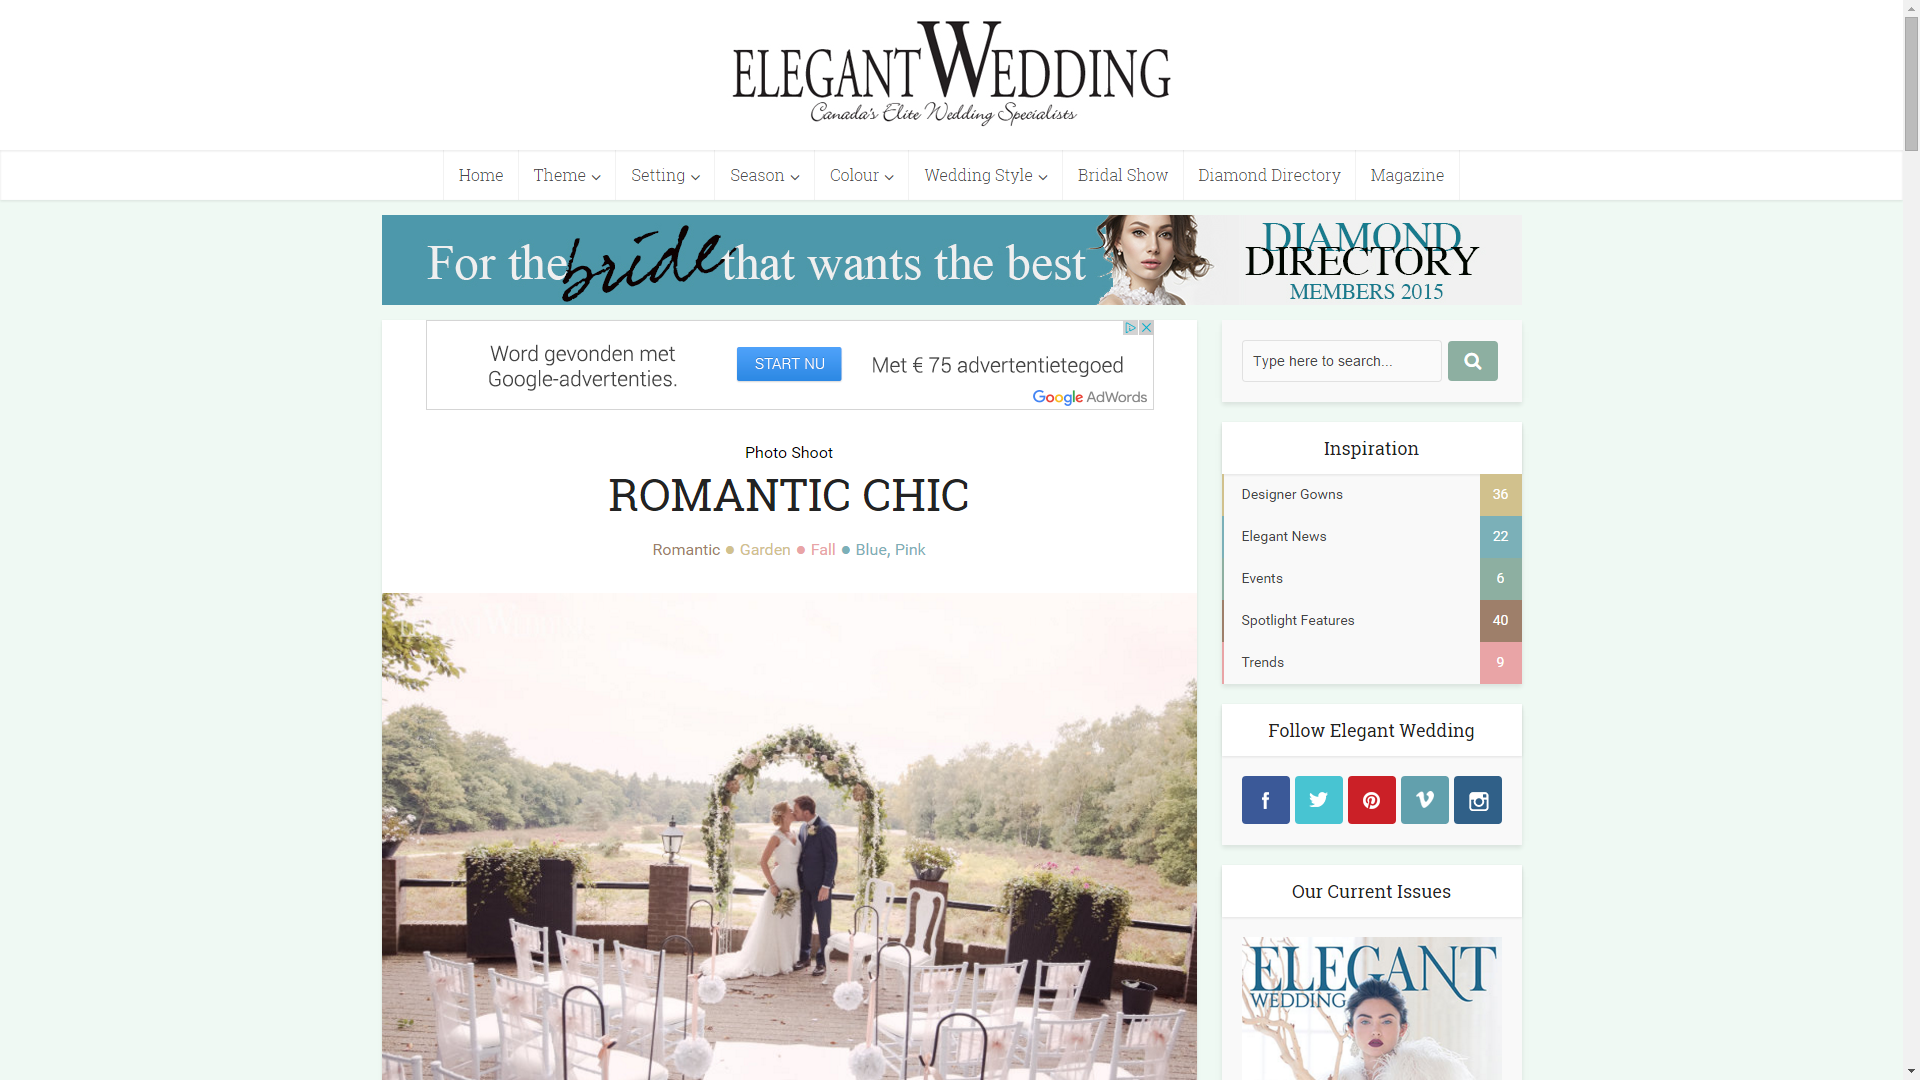 ElegantWedding_RomanticChic